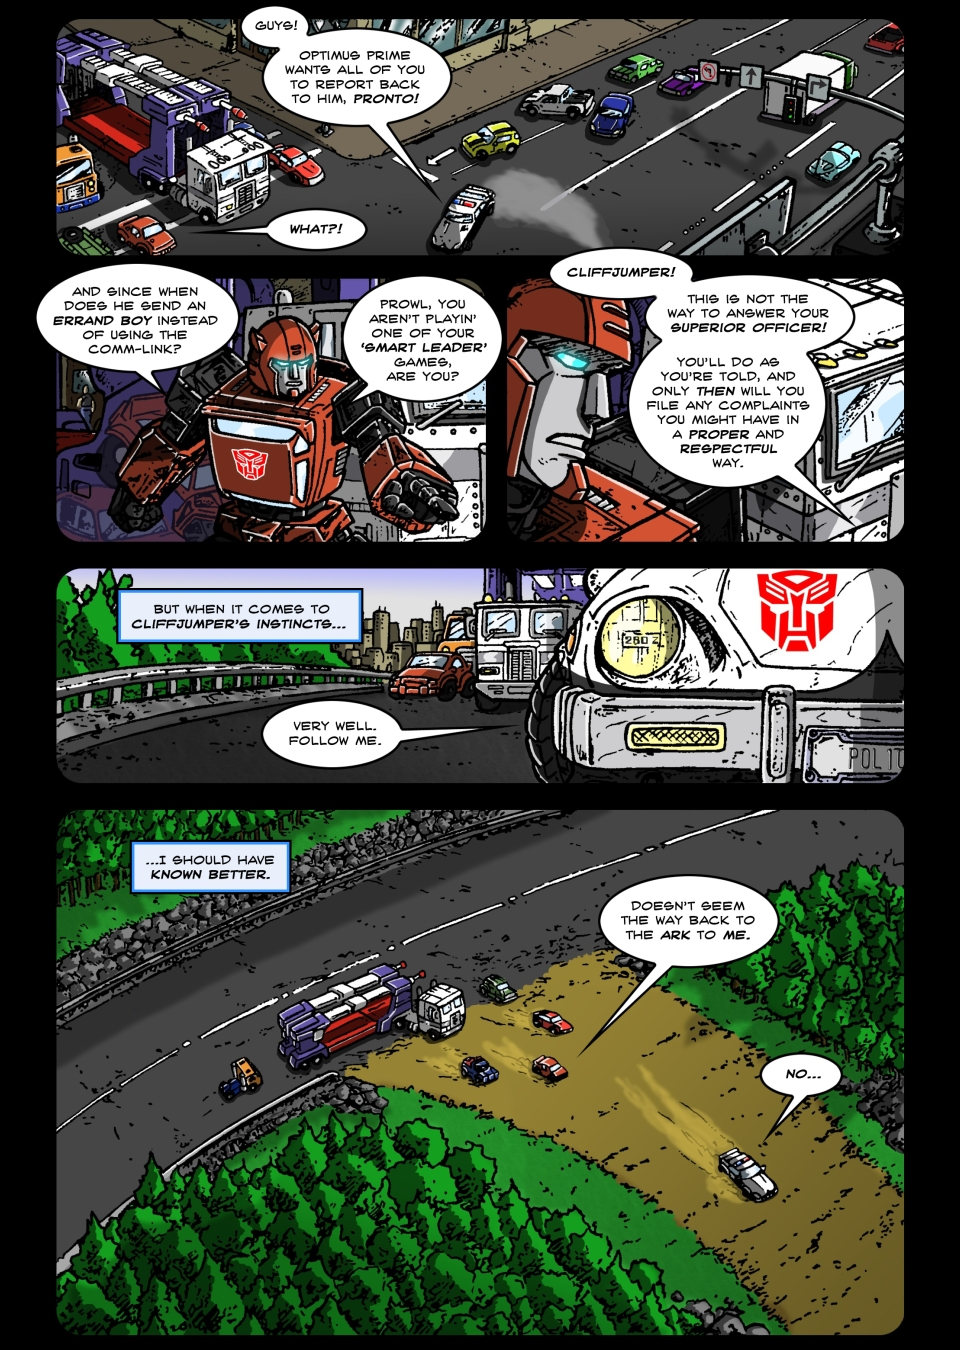 Attack of the DIAclones page 07